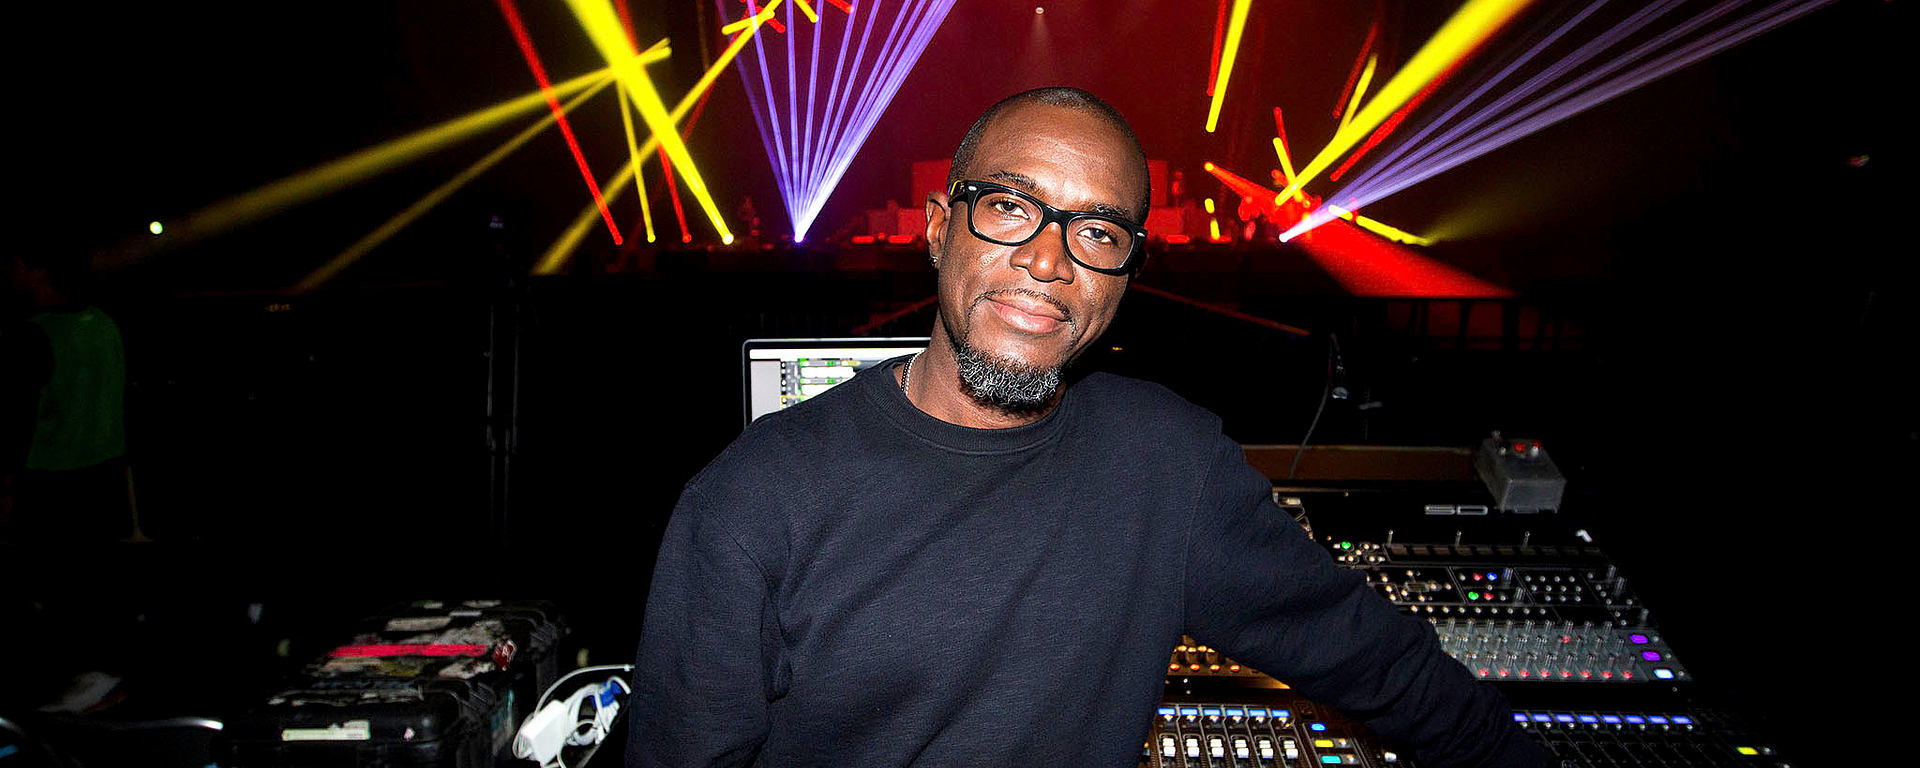 Courtney Taylor, FOH of Pharrell Williams uses his DGT 450 professional USB mic on tour